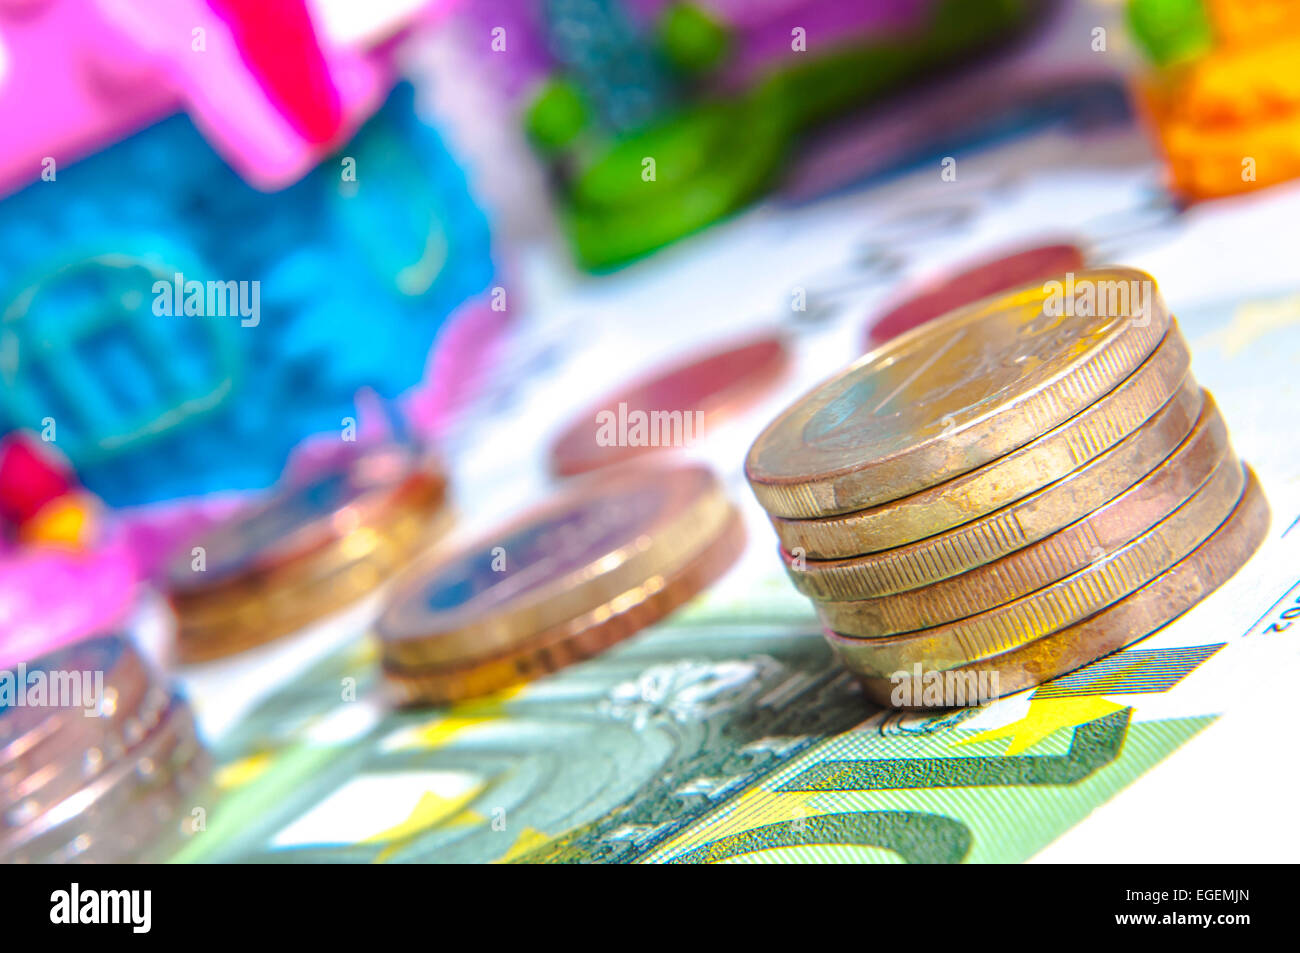 a tower of Euro coins, banknote, European currency - Stock Image